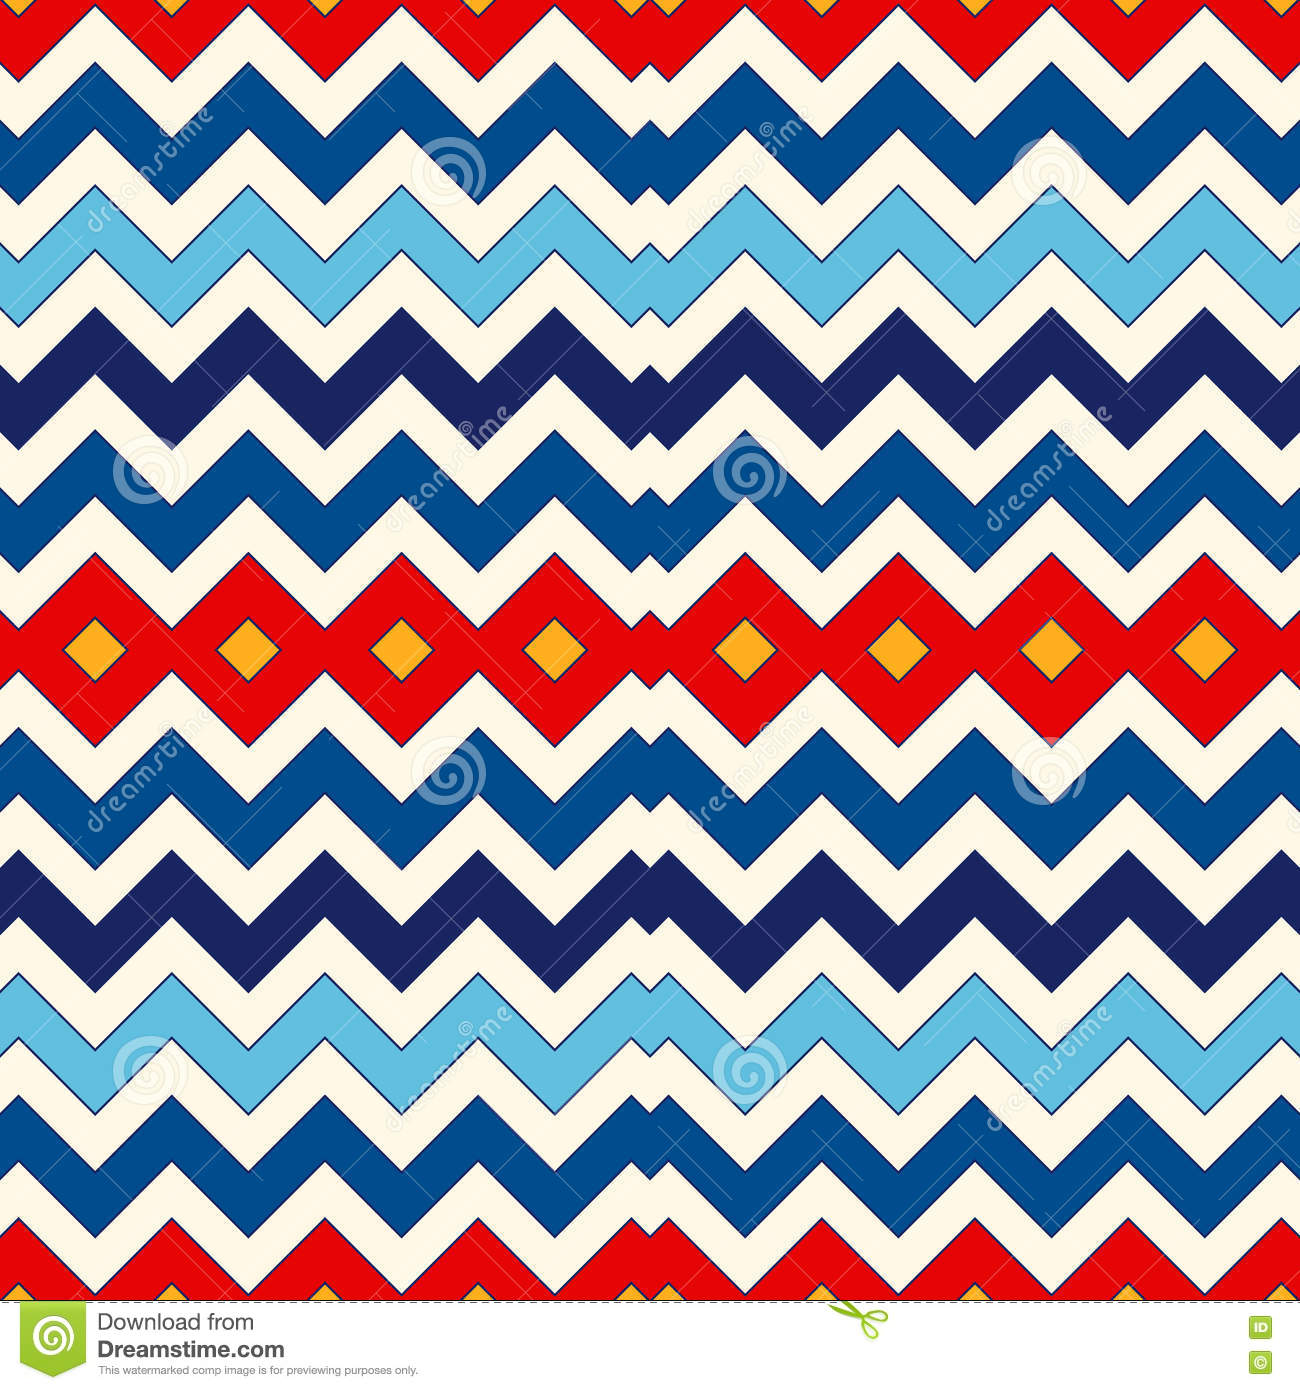 Background geometric mexican patterns seamless vector zigzag maya - Seamless Pattern With Symmetric Geometric Ornament Chevron Zigzag Bright Colors Horizontal Lines Abstract Background